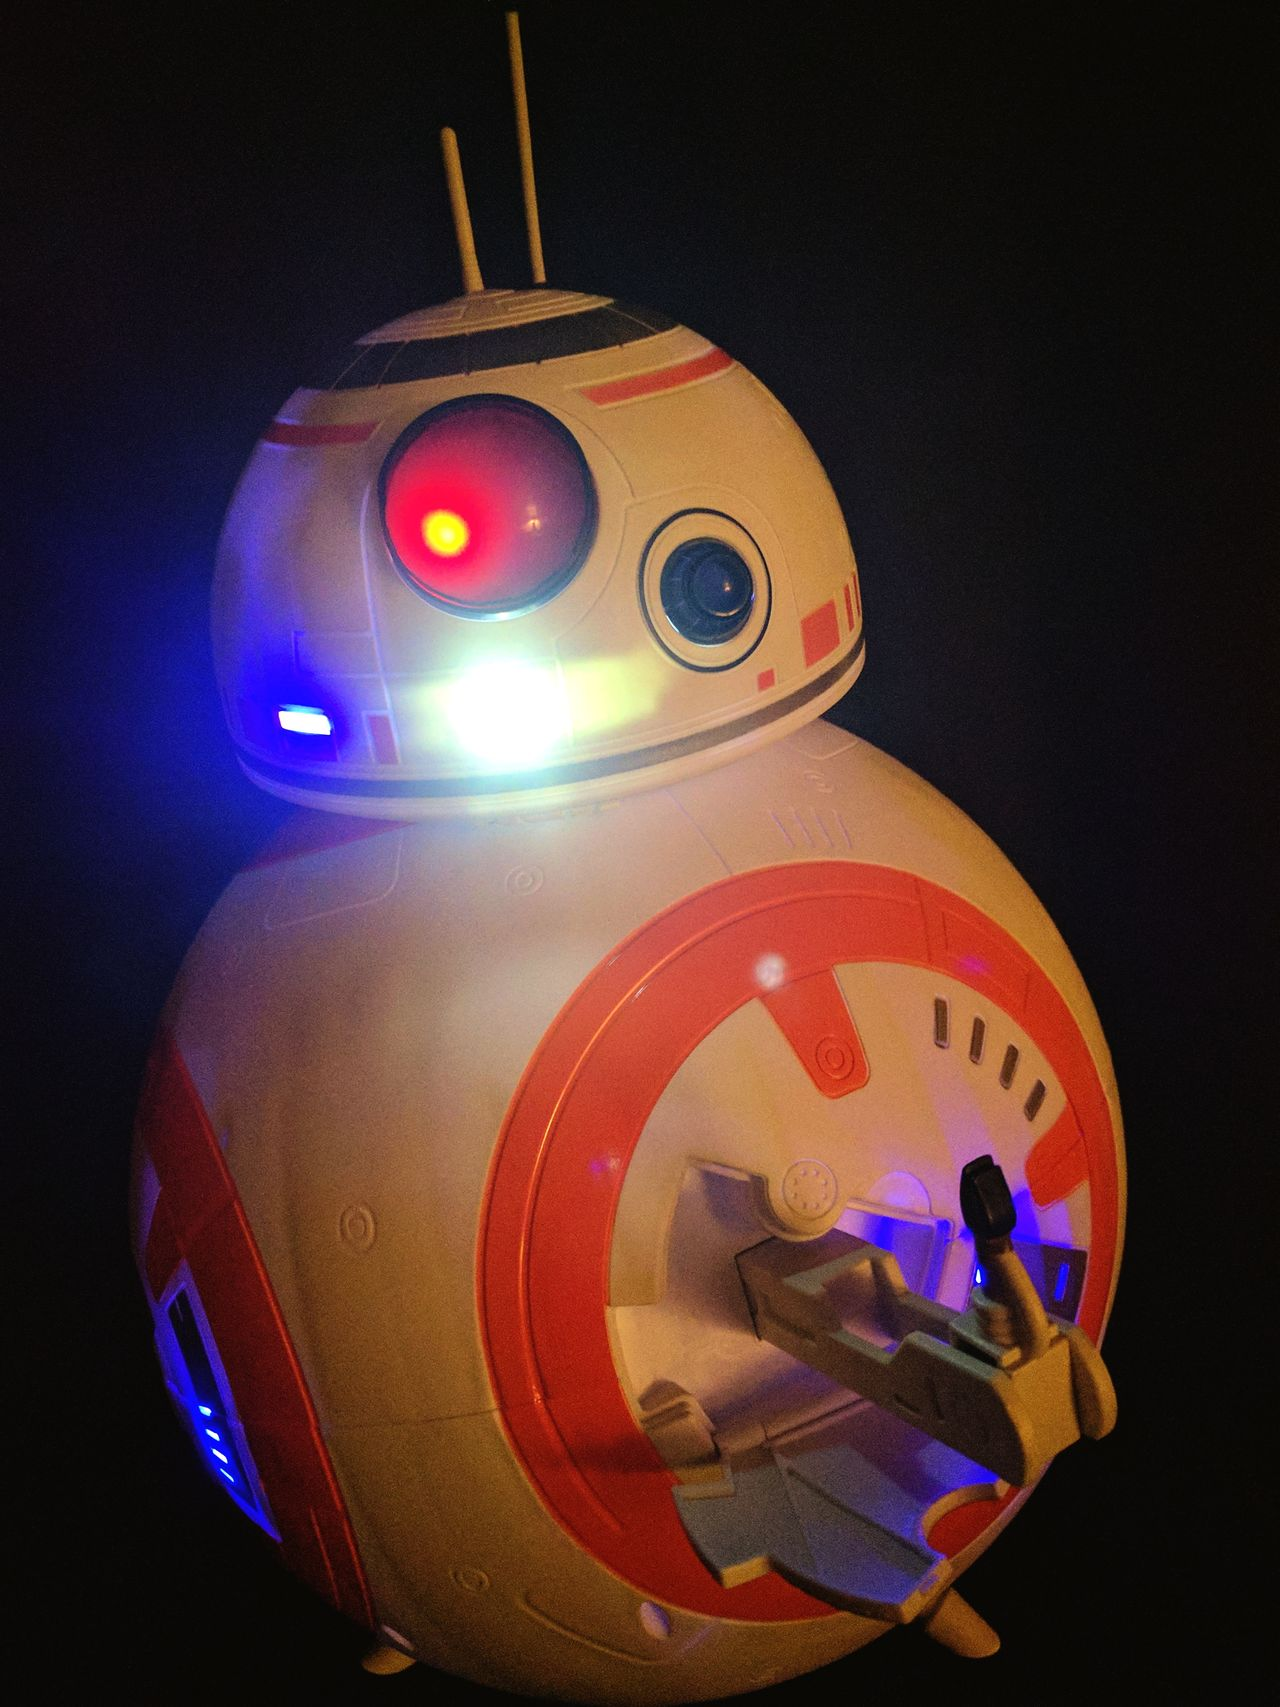 bb-8 flipping the bird Indoors  Drone  Star Wars Collectables Star Wars Flipping The Bird The Finger Trying To Find The Light  No People Low Light Photography EyeEm Gallery Taking Photos No Edit No Fun Eyem Gallery Close Up Technology Futuristic Scale Model Sense Of Humor Laughter Is The BEST Medicine At Home